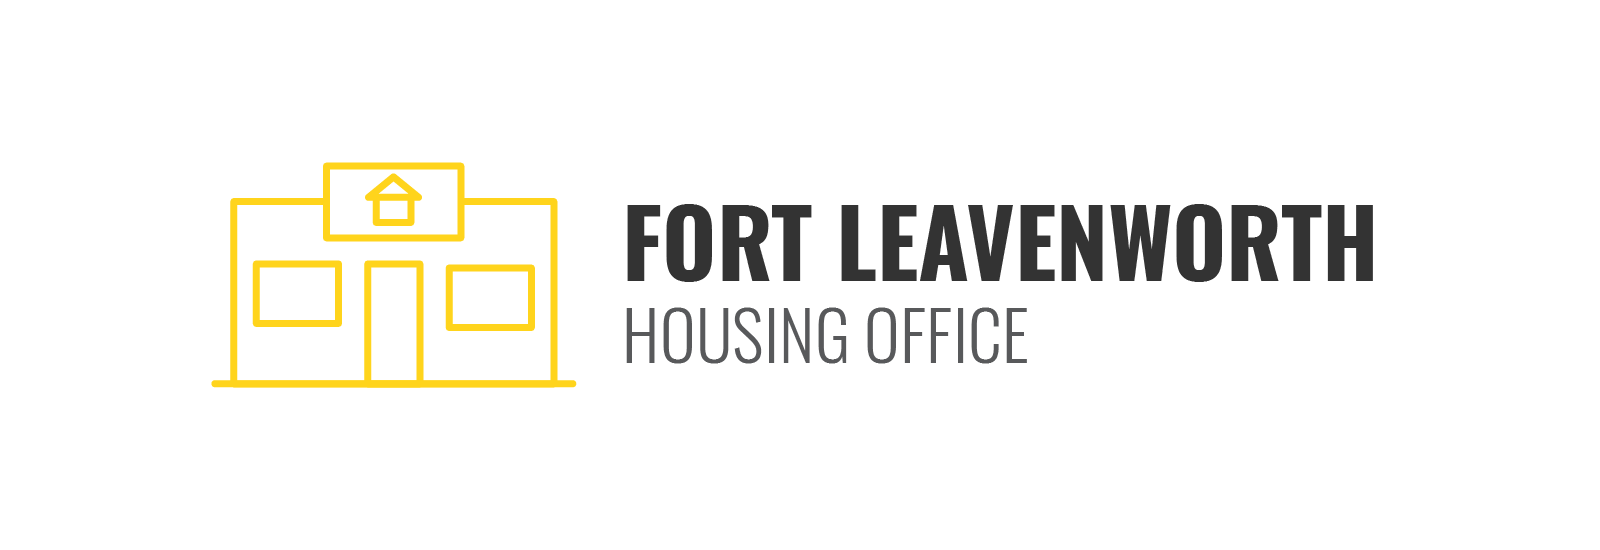 Fort Leavenworth Housing Office